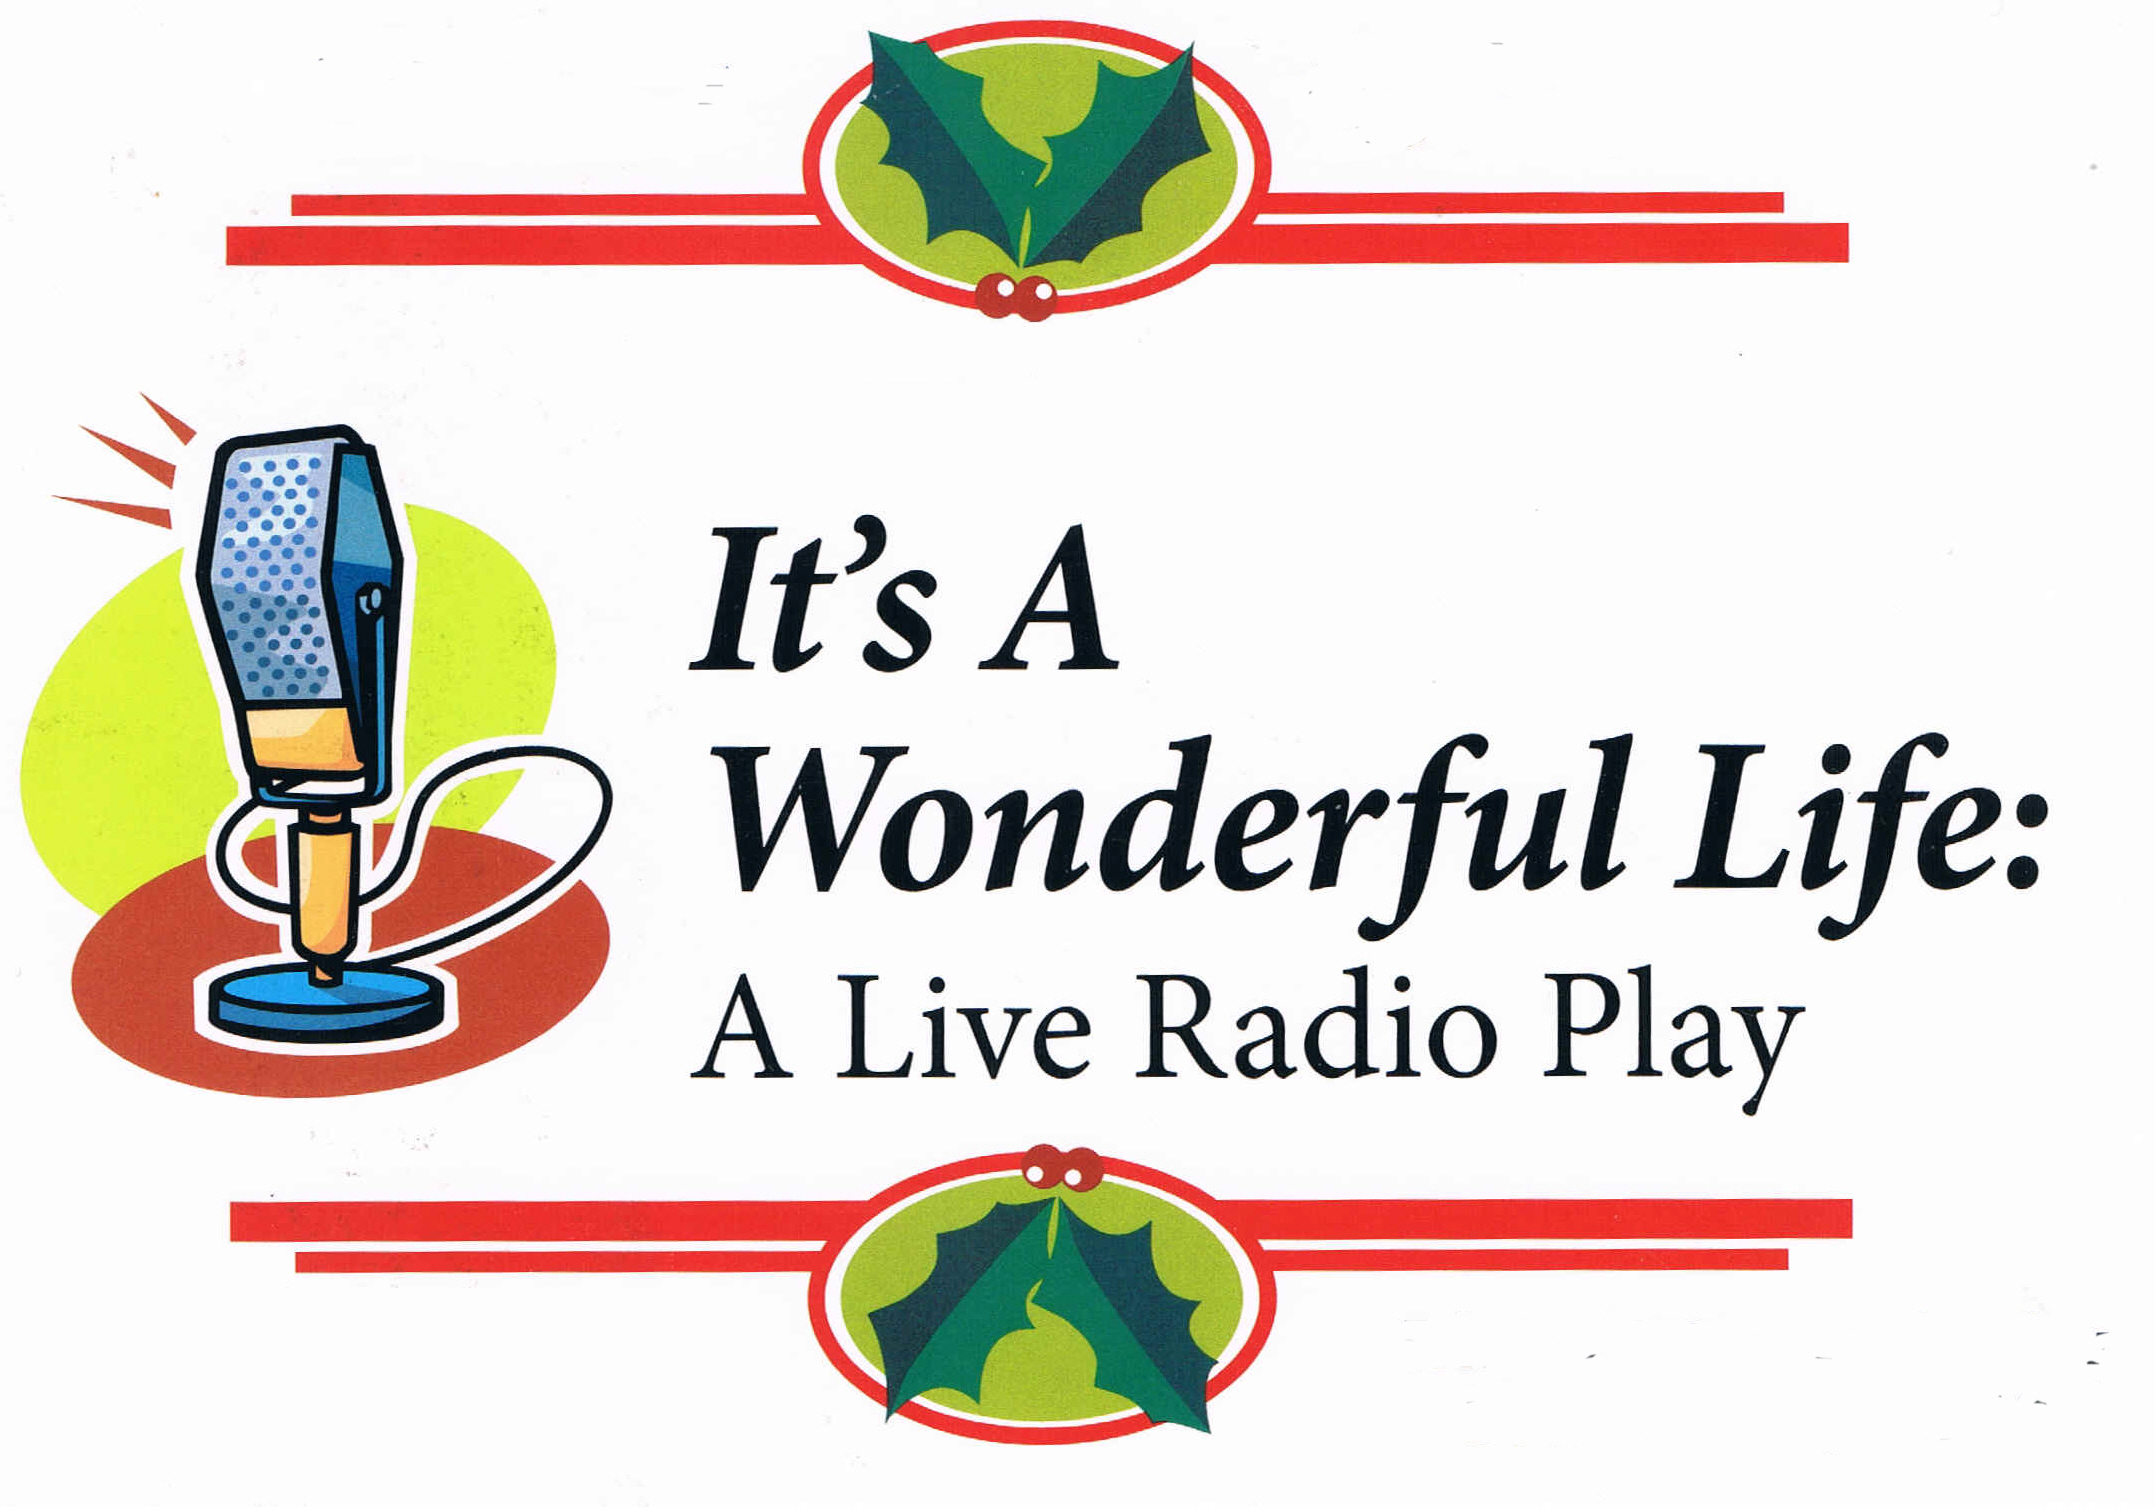 It S A Wonderful Life Live Radio Play Wonderful Place